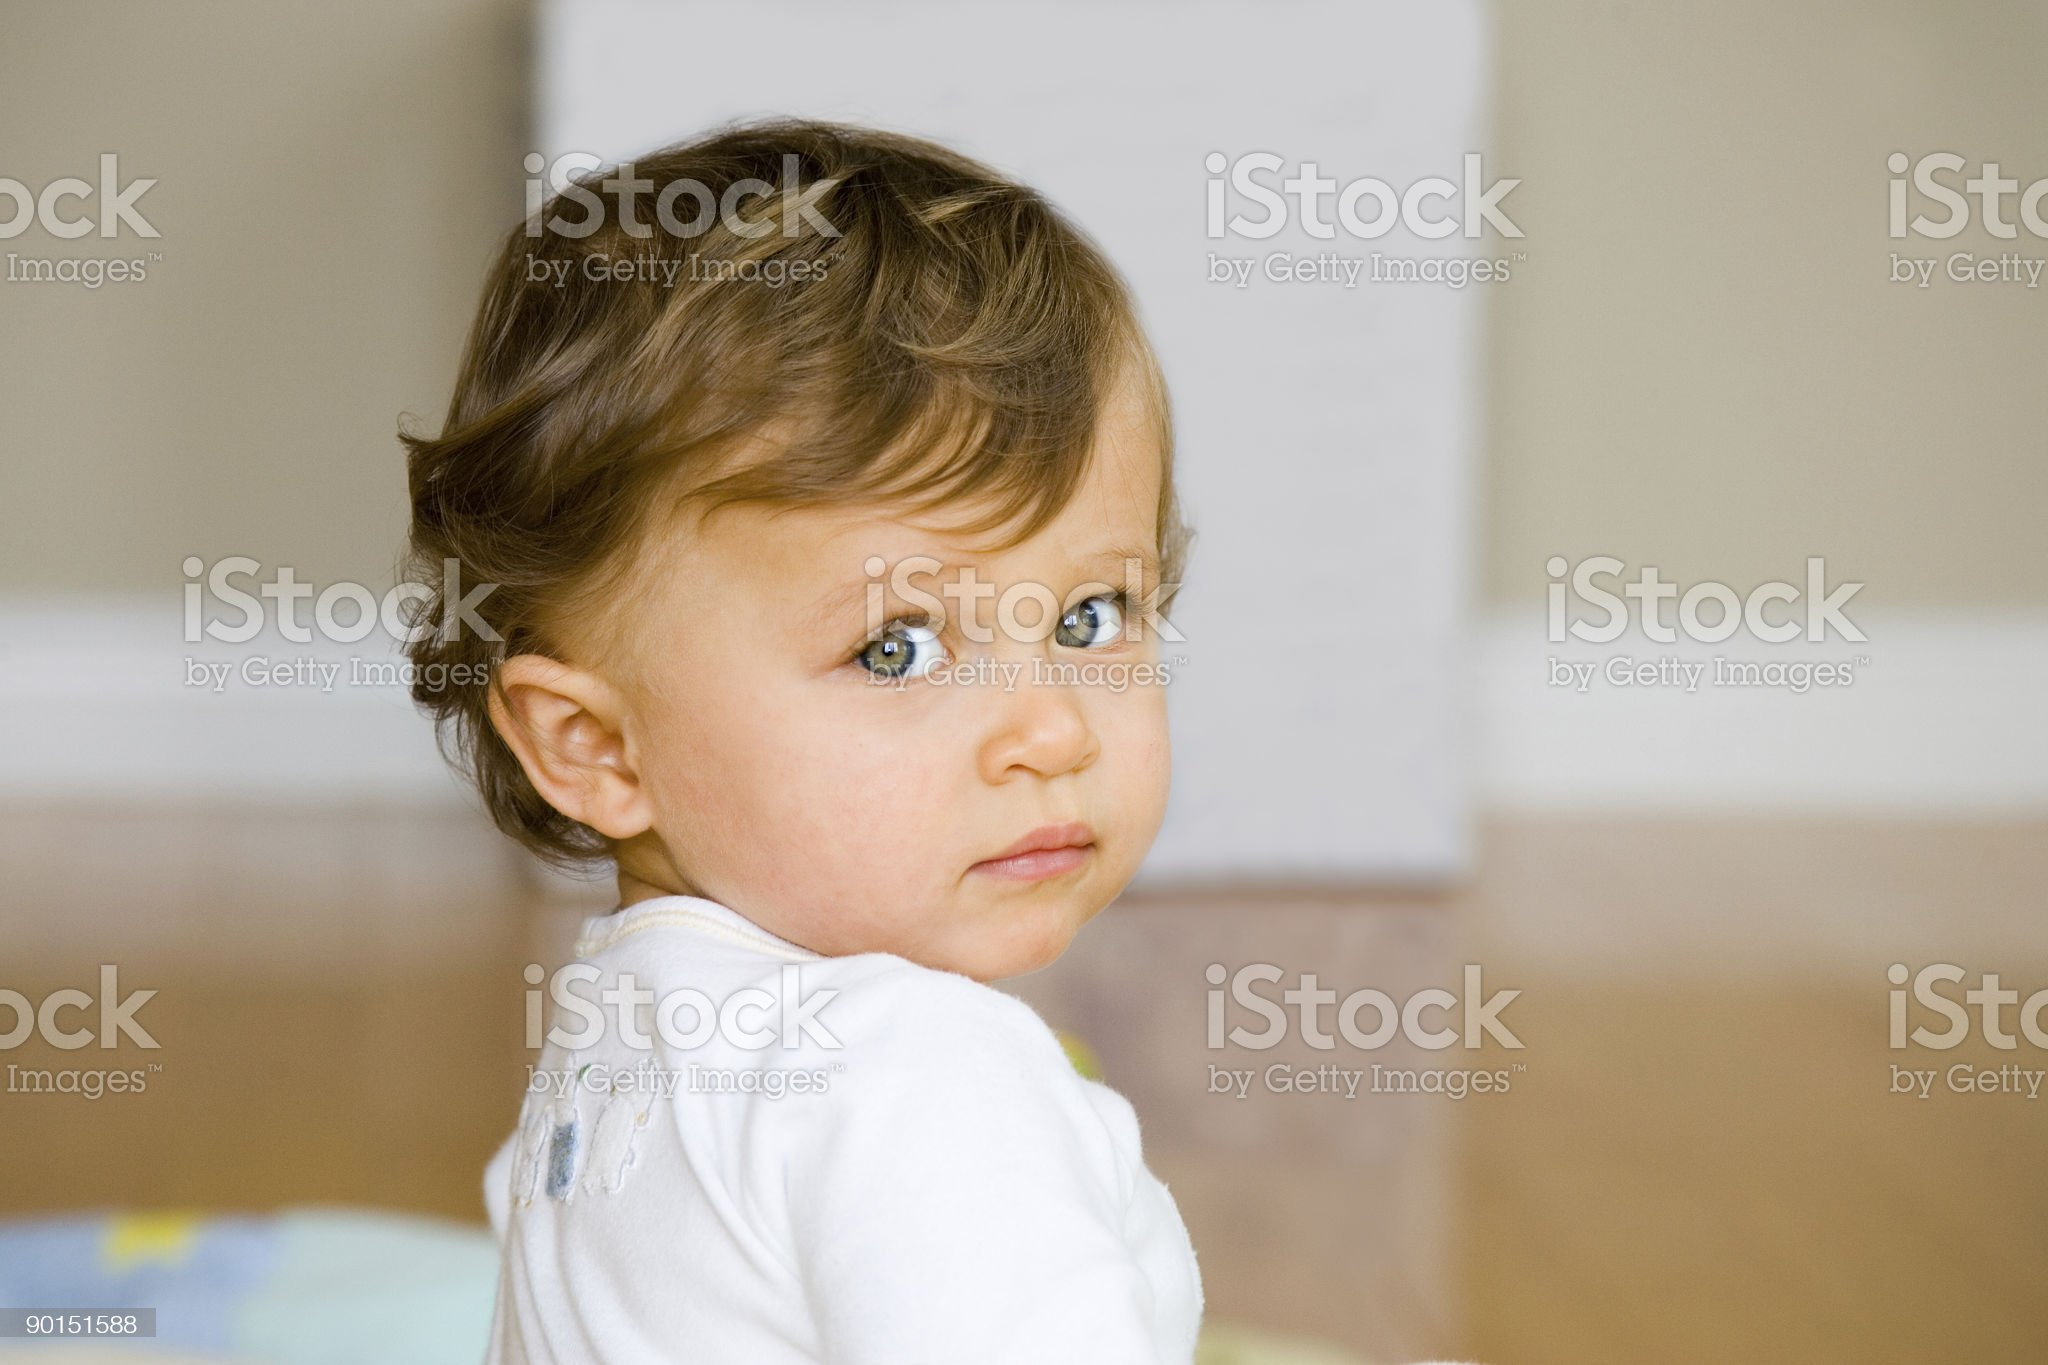 People - Portrait of baby girl looking over her shoulder royalty-free stock photo